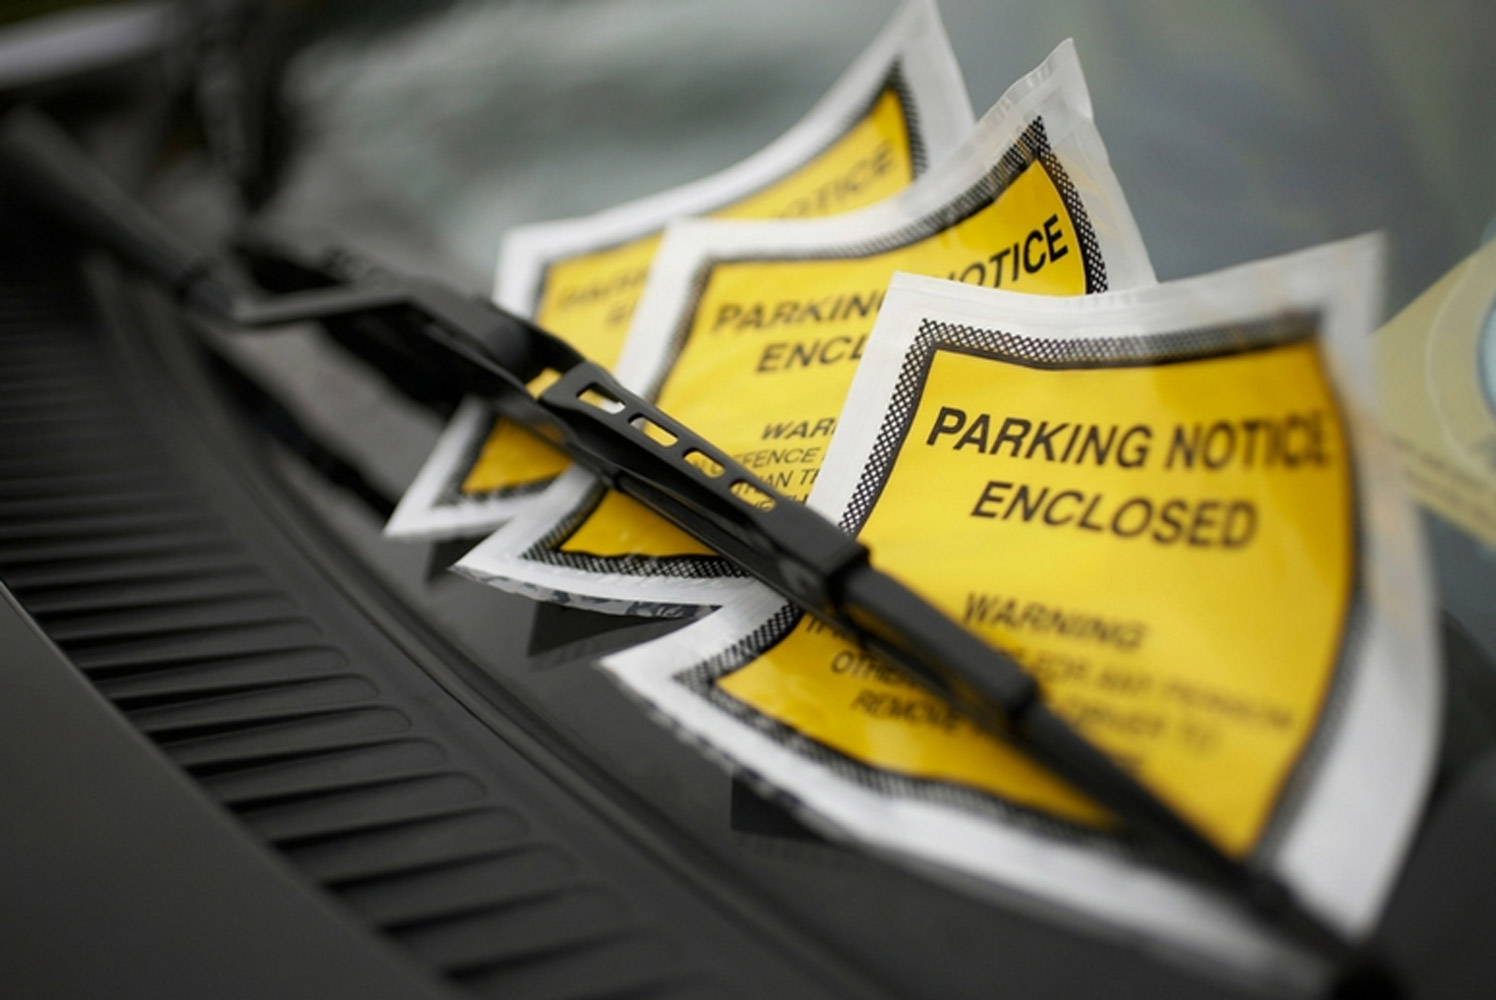 Parking Charge Notices - What You Need To Know